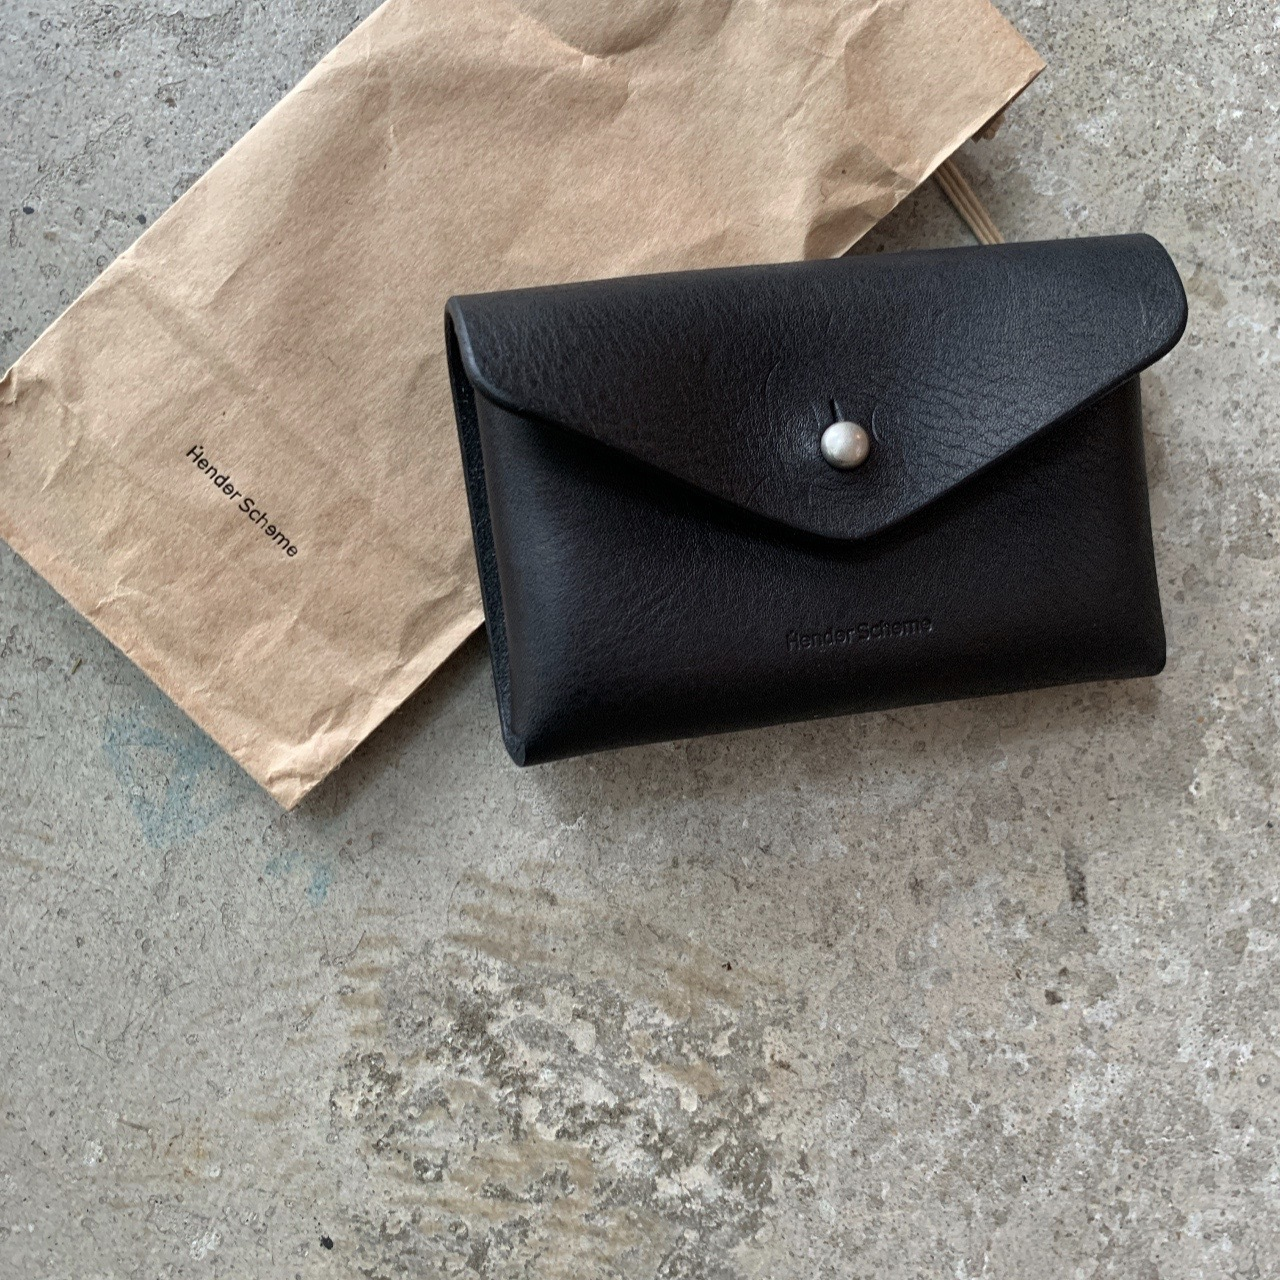 Hender Scheme - one piece card case black